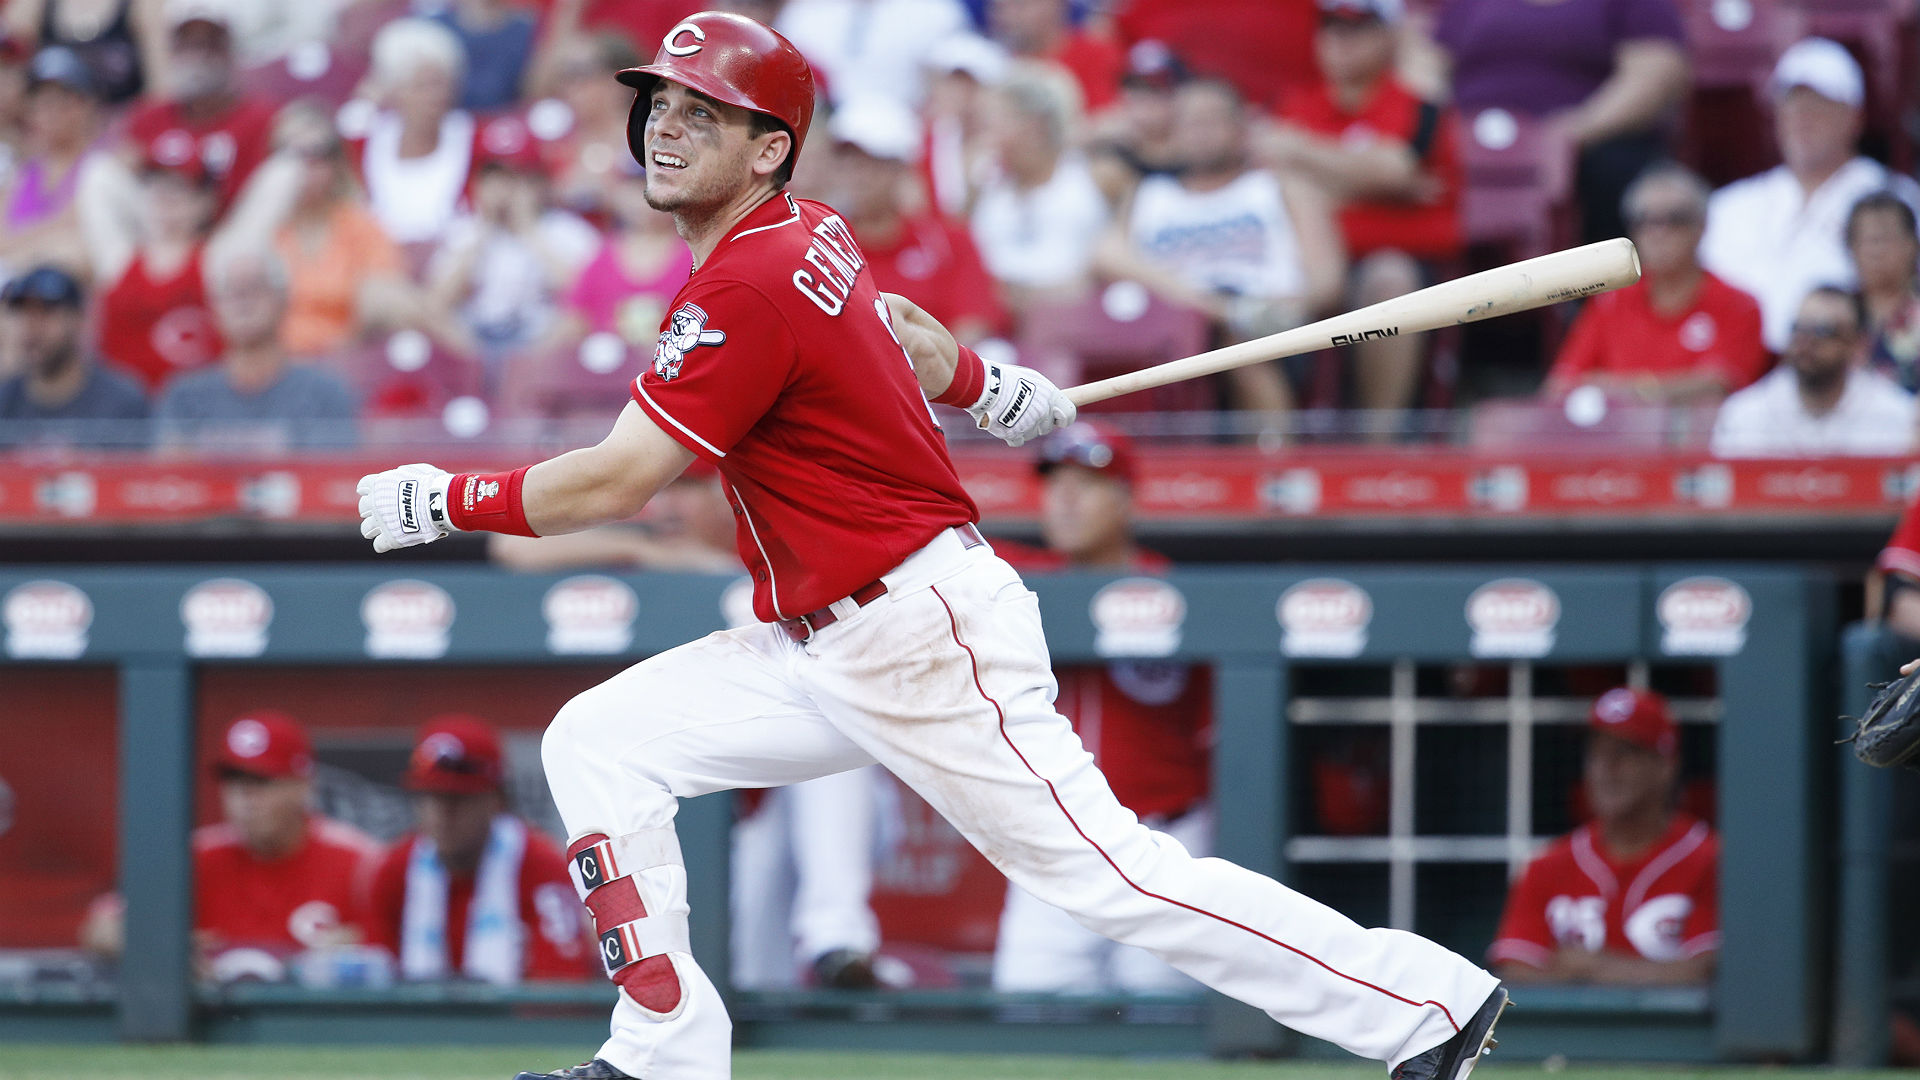 Scooter Gennett injury update: Reds second baseman (groin) to miss 8-12 weeks